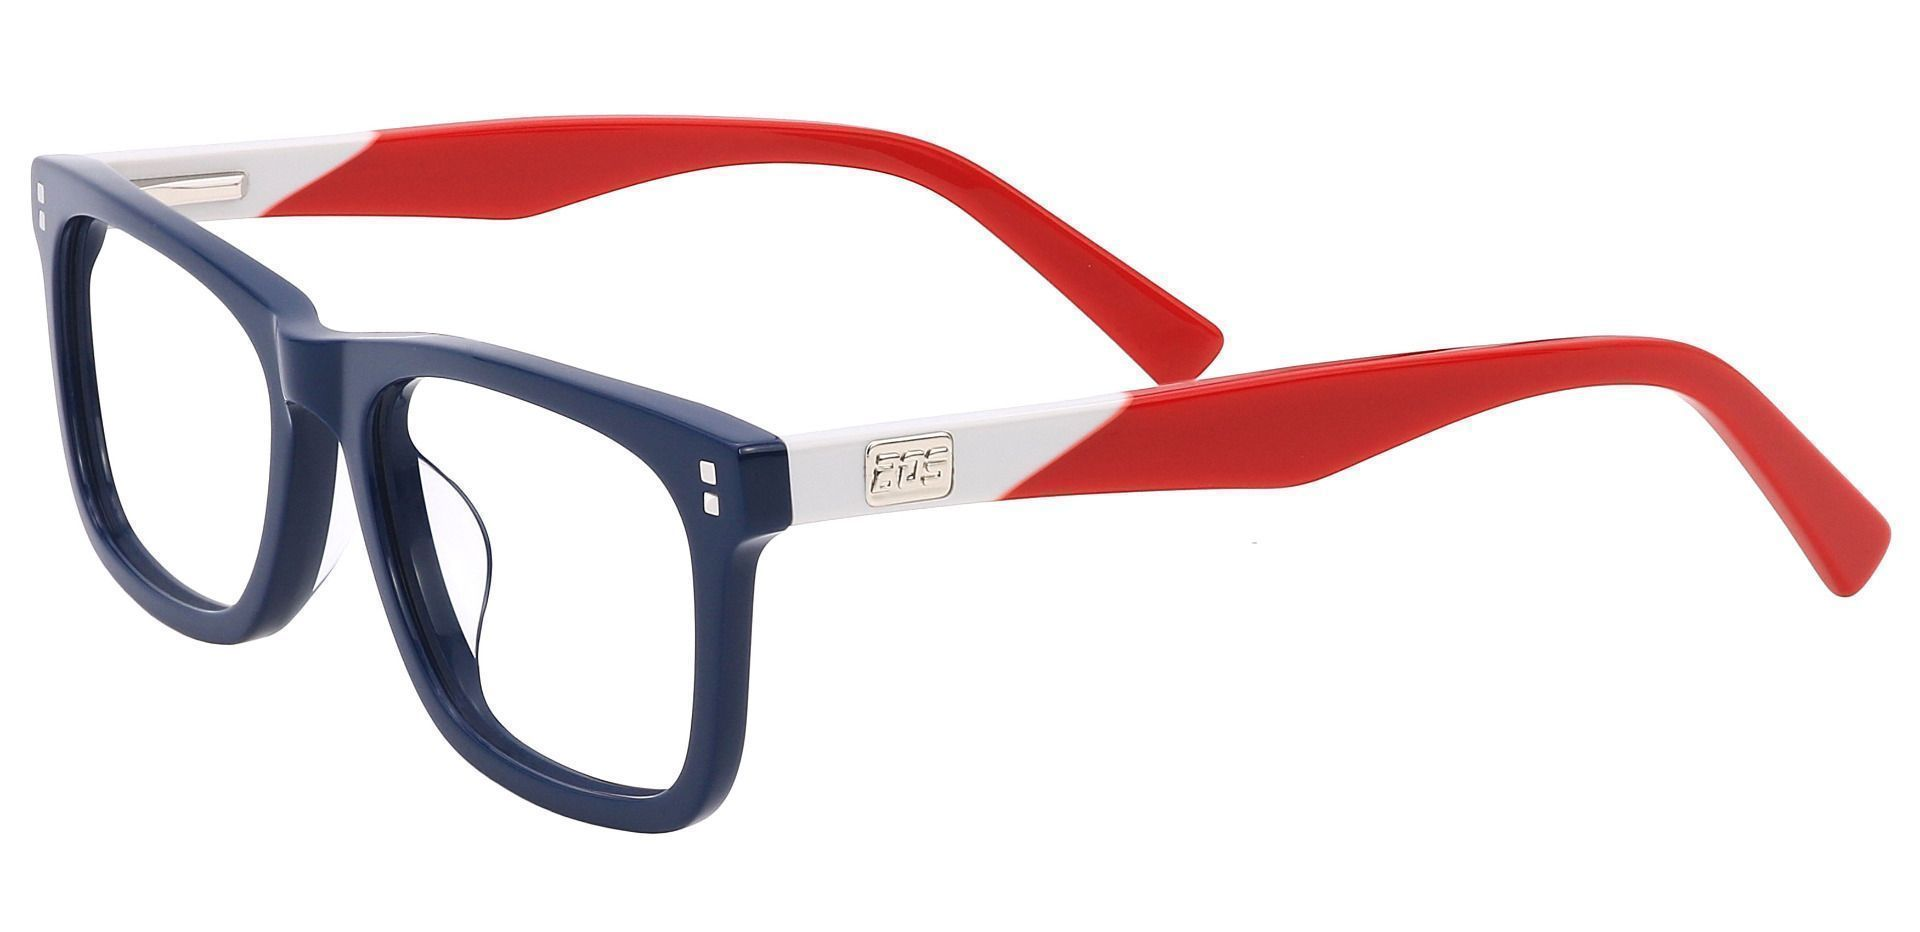 Newbury Rectangle Non-Rx Glasses - The Frame Is Blue And Red